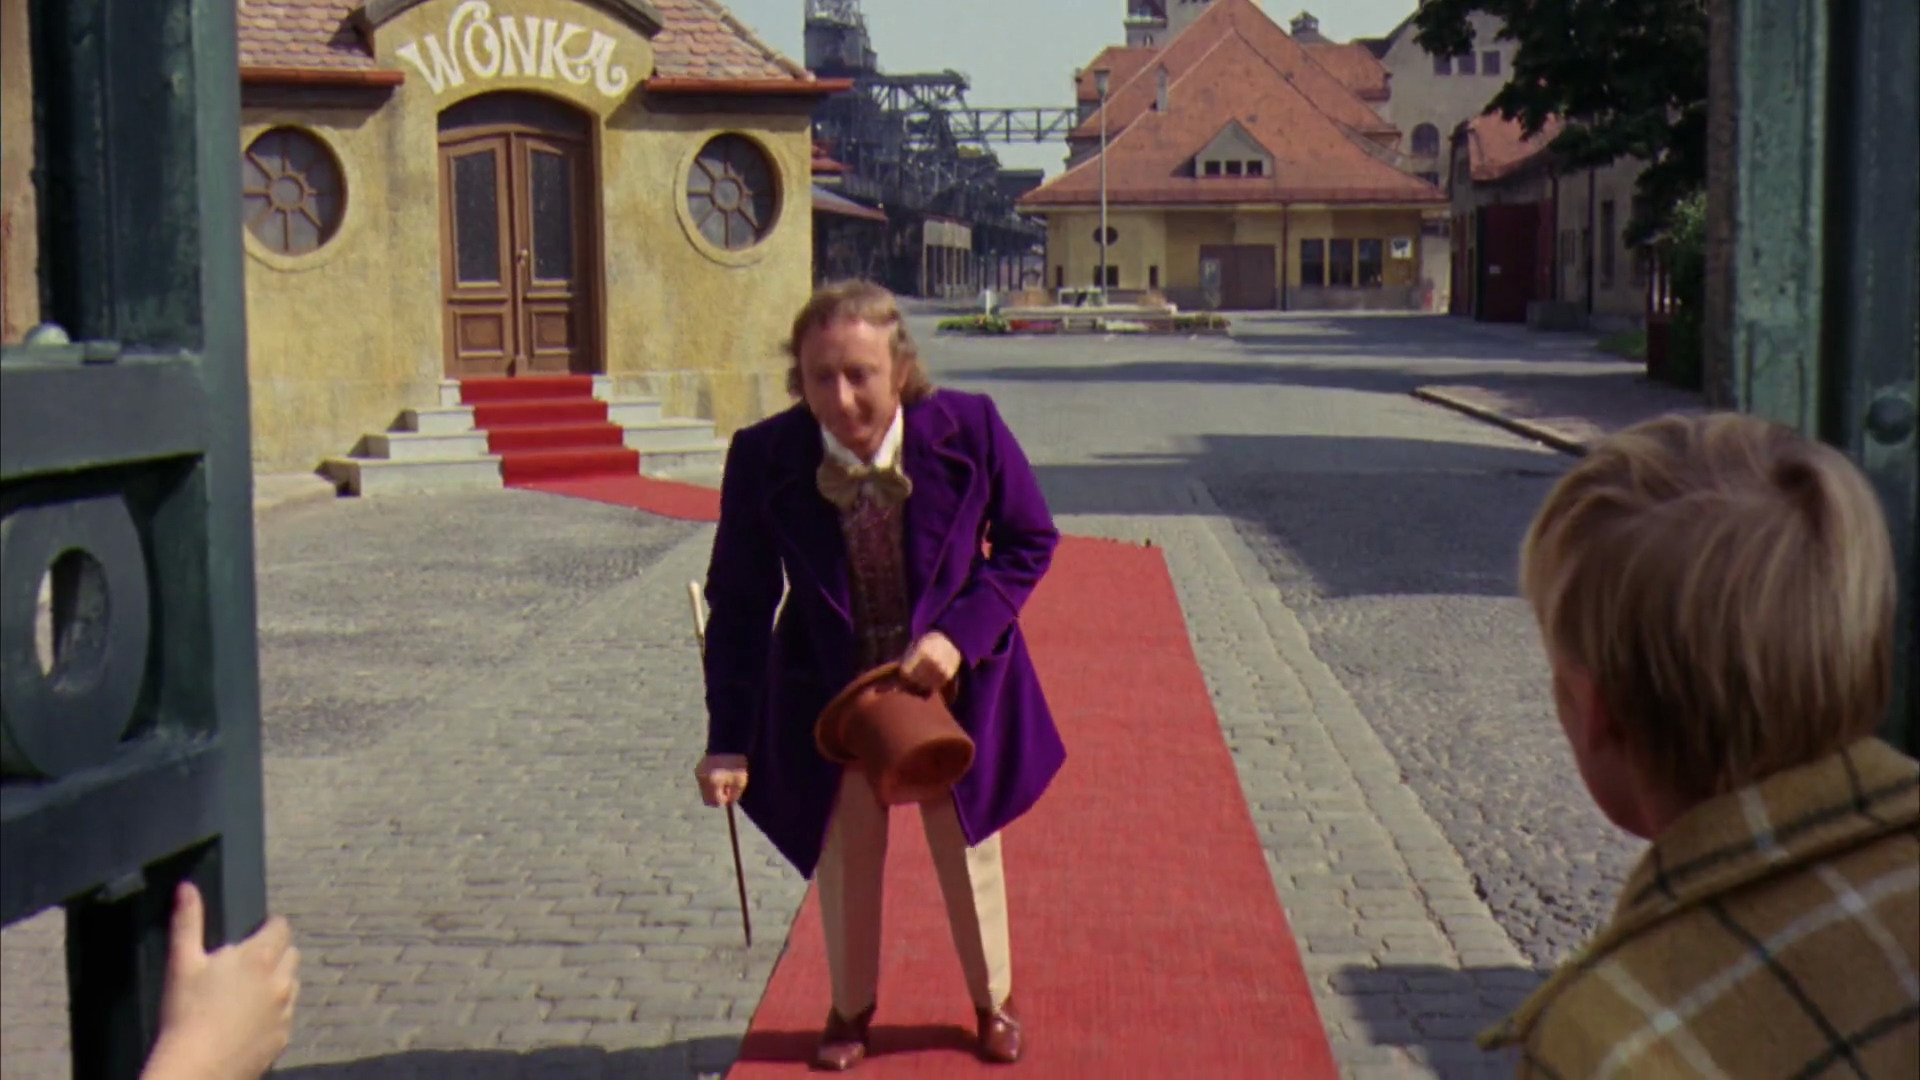 willy-wonka-movie-screencaps.com-5154.jpg